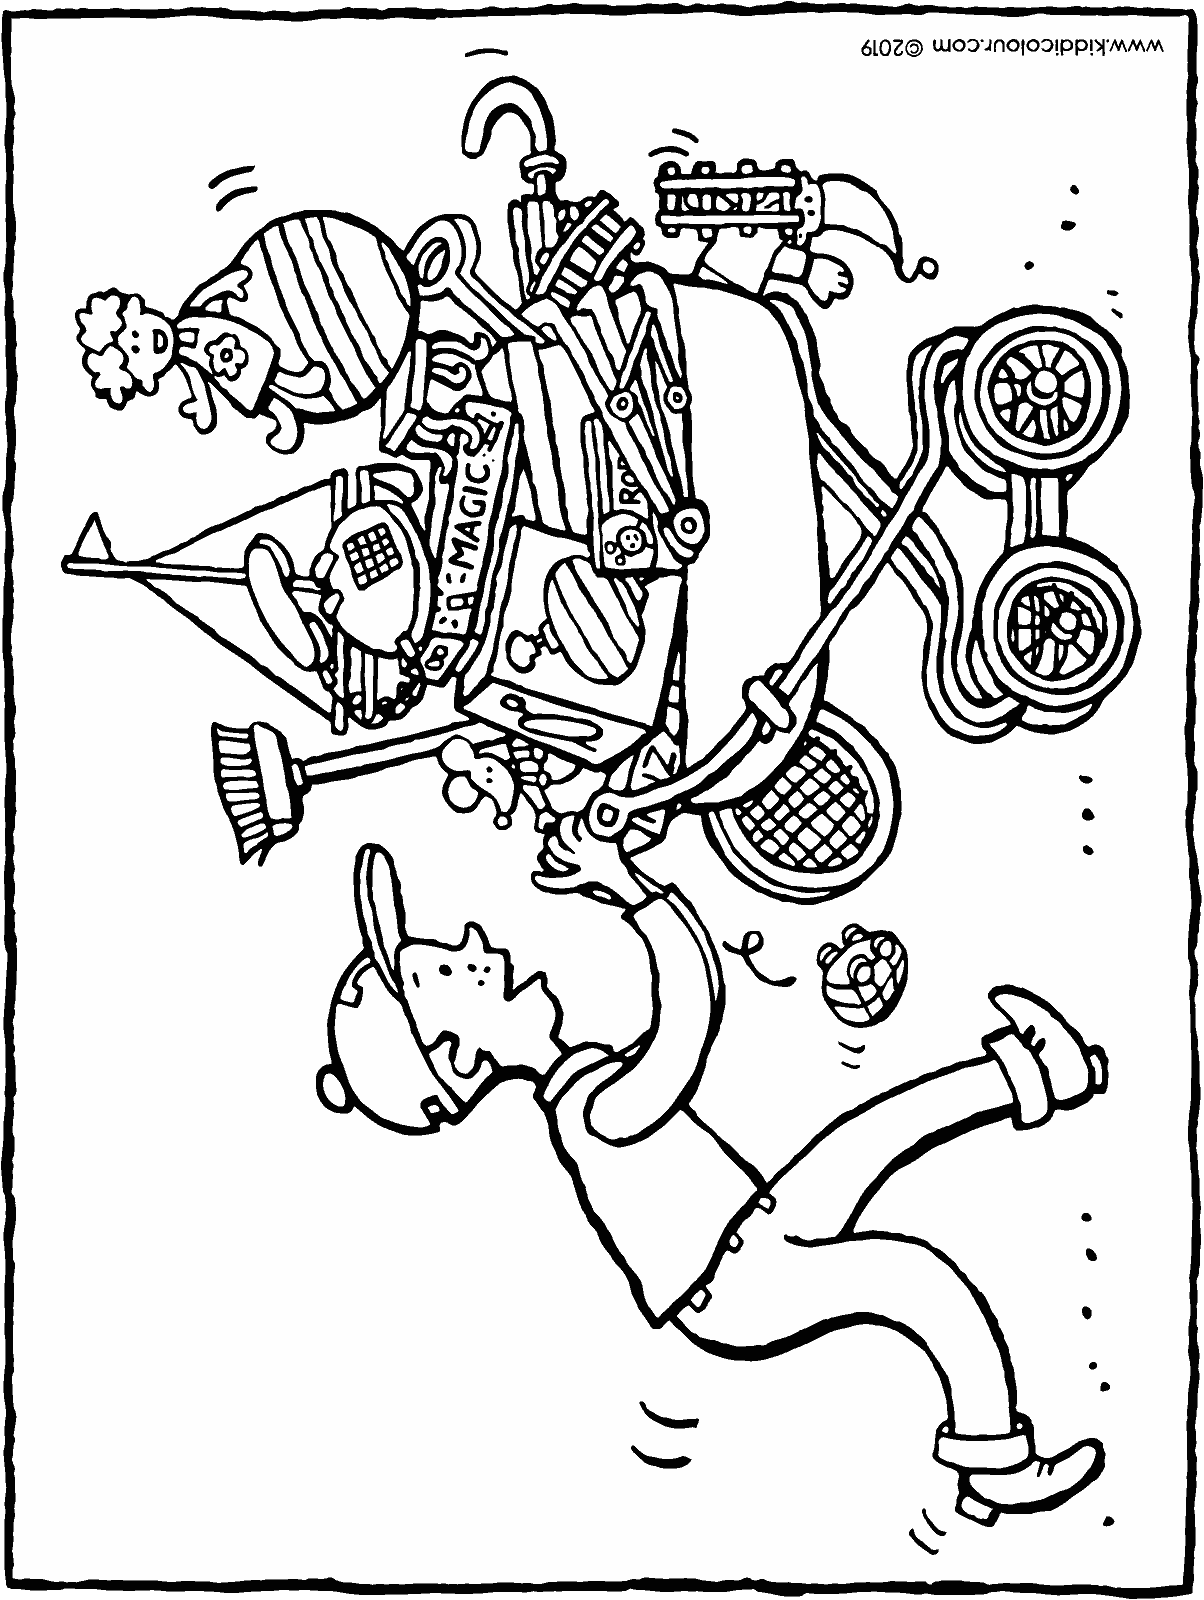 to the flea market colouring page drawing picture 01H